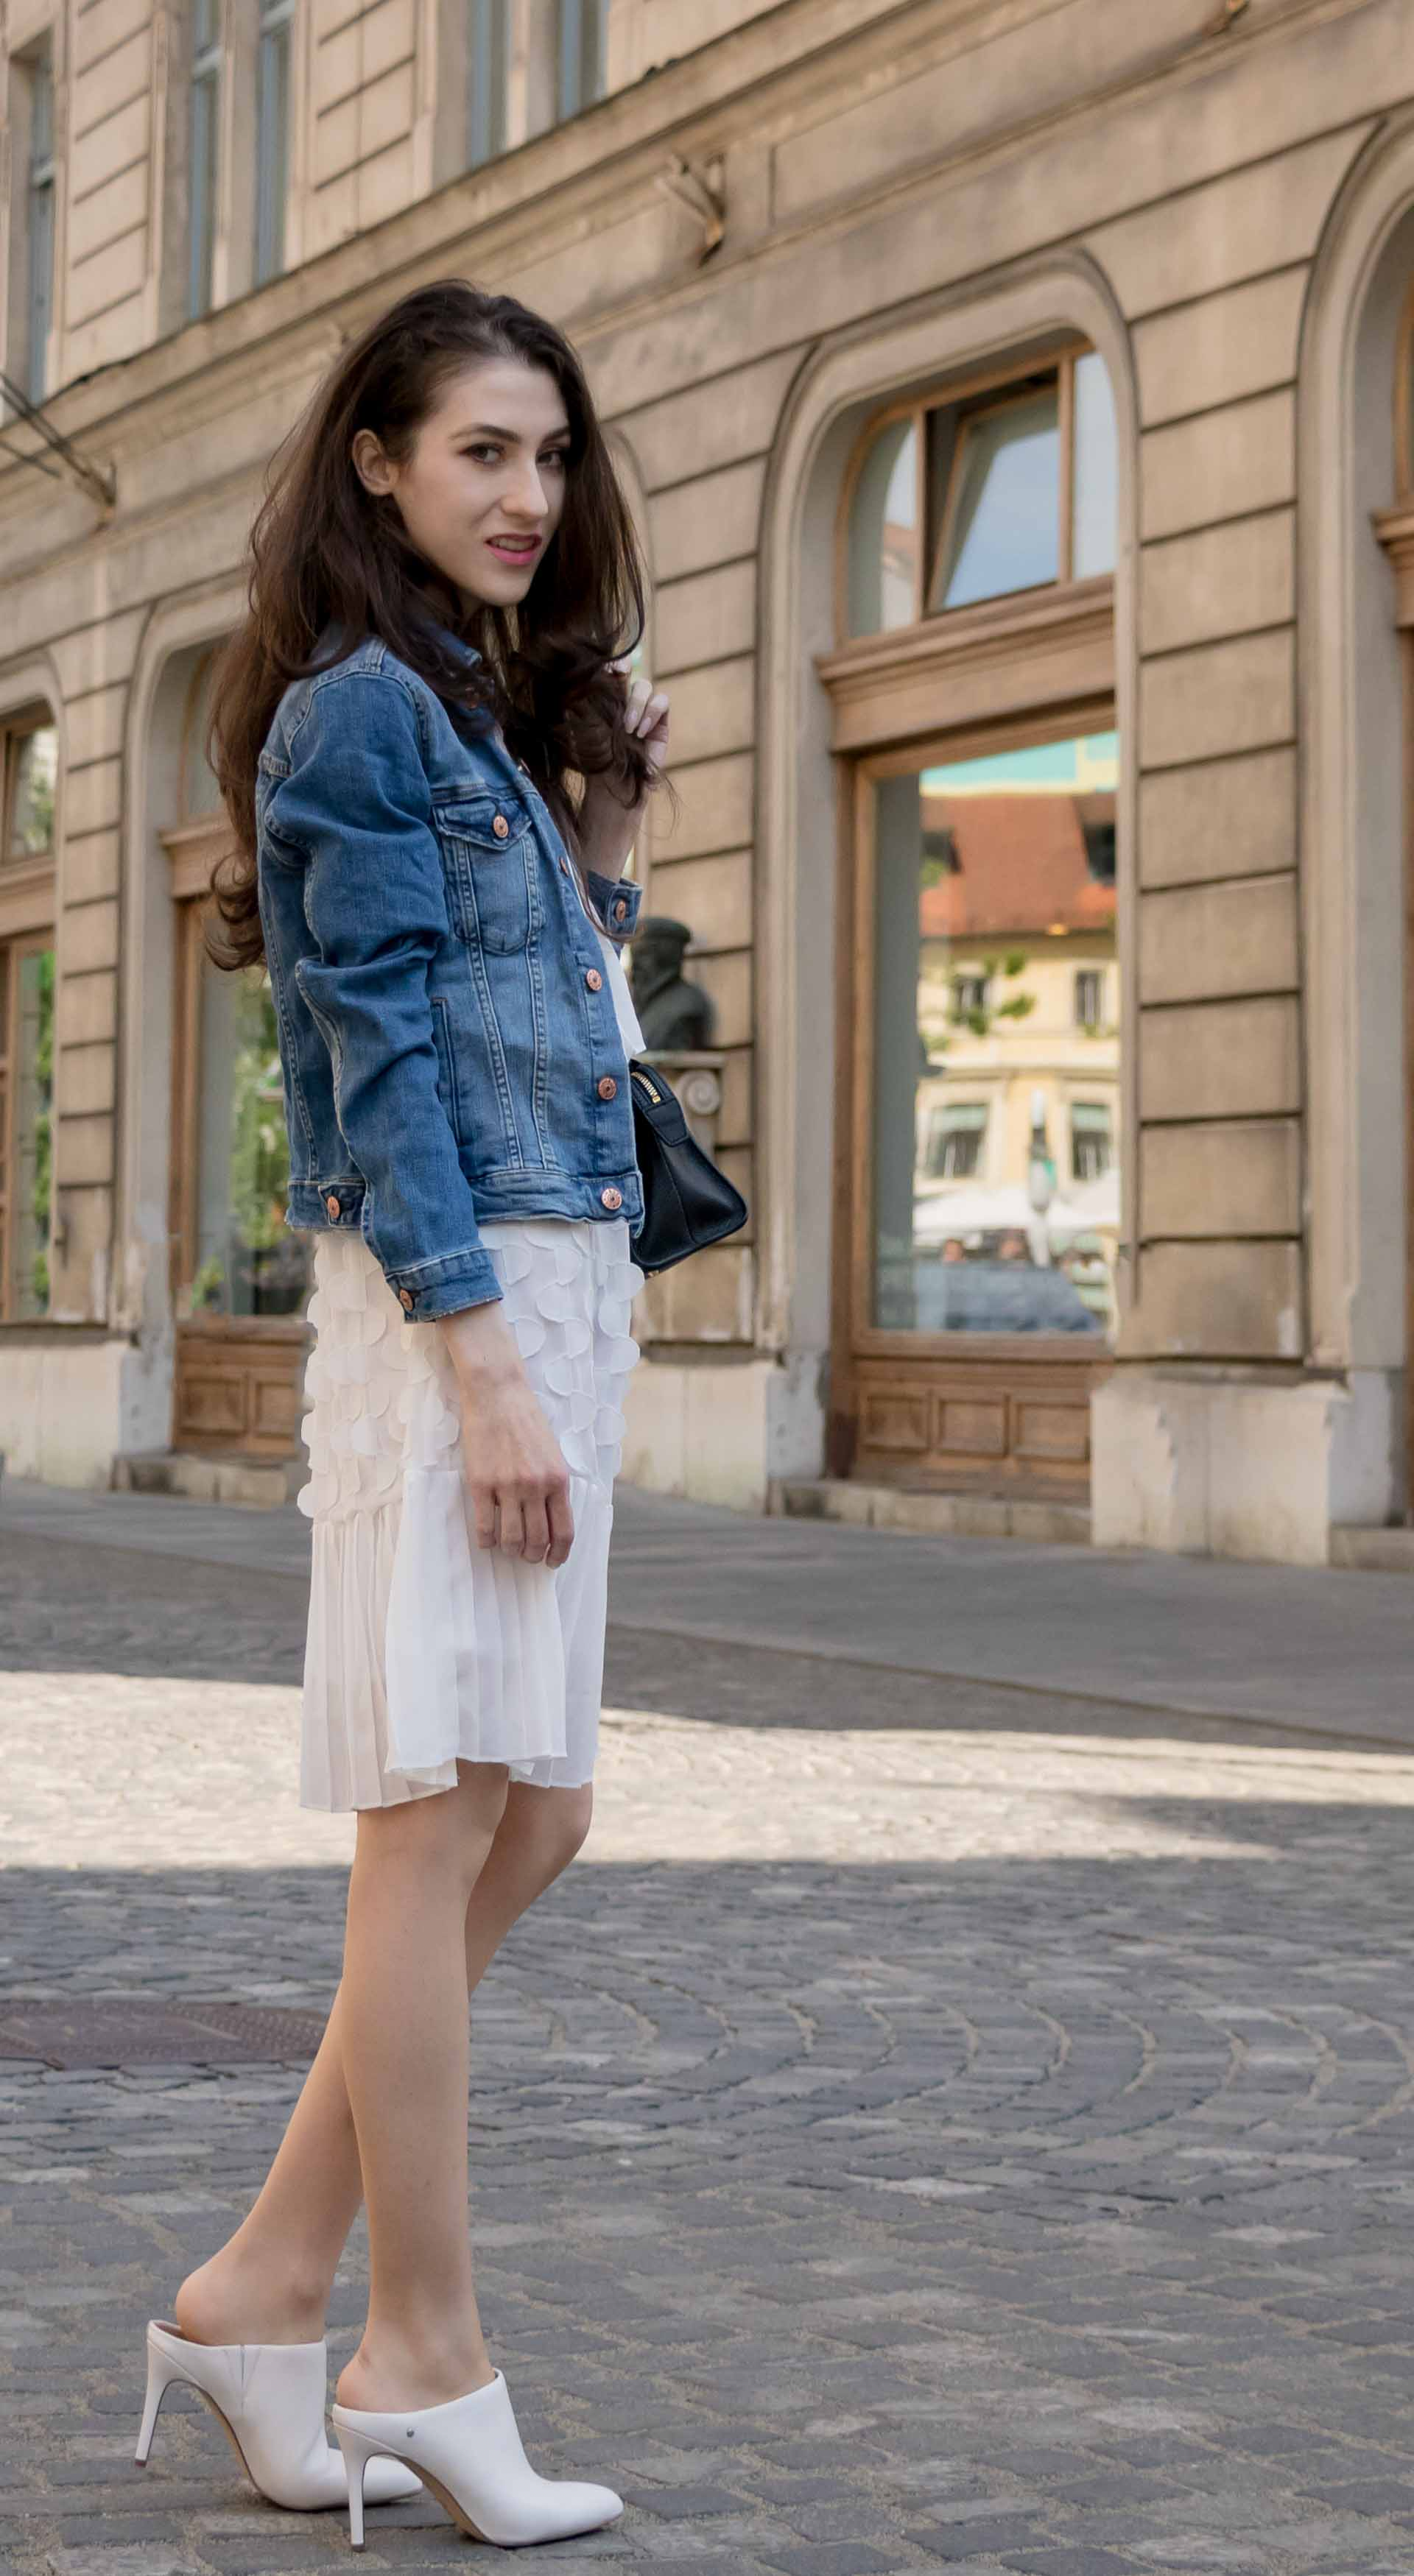 Veronika Lipar Fashion Editor of Brunette from Wall Street wearing H&M blue denim jacket, Storets white pleated short dress, white mules and Adam Selman x Le Specs white cat eye Lolita sunglasses, black small bag in Ljubljana